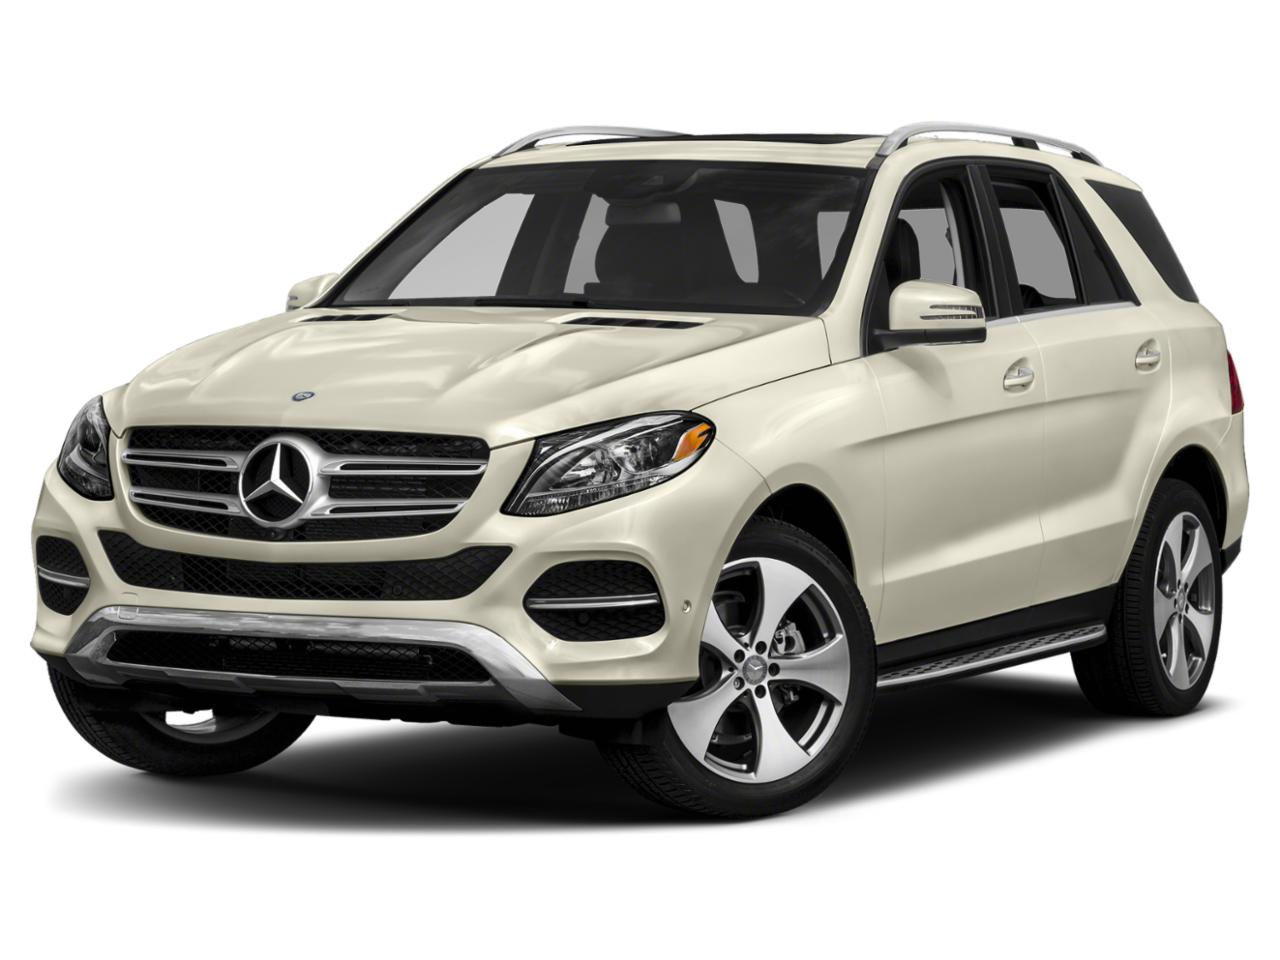 2018 Mercedes-Benz GLE Vehicle Photo in TALLAHASSEE, FL 32308